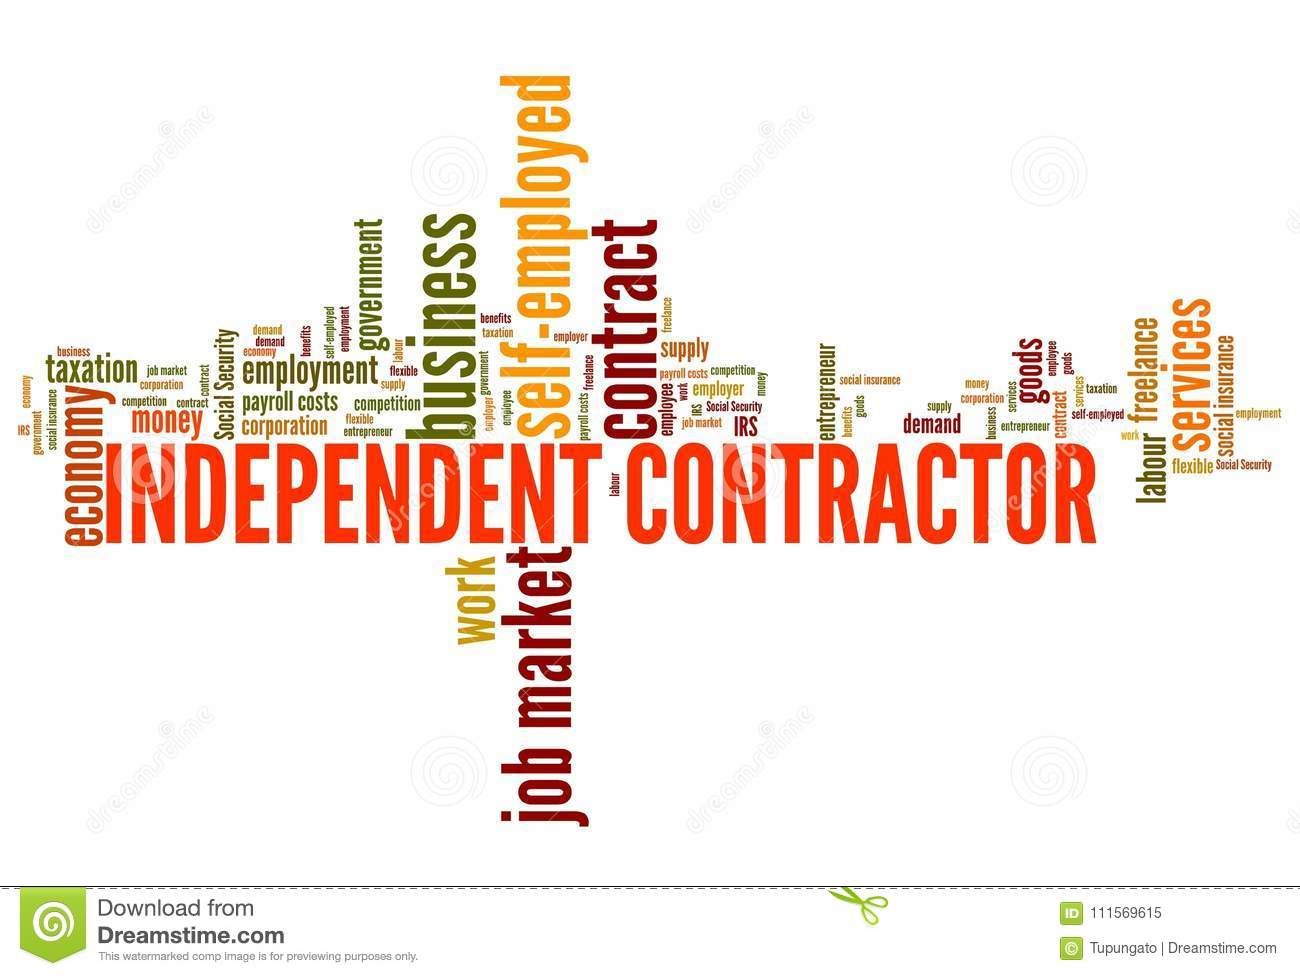 Indepentend contractor stock illustration  Illustration of